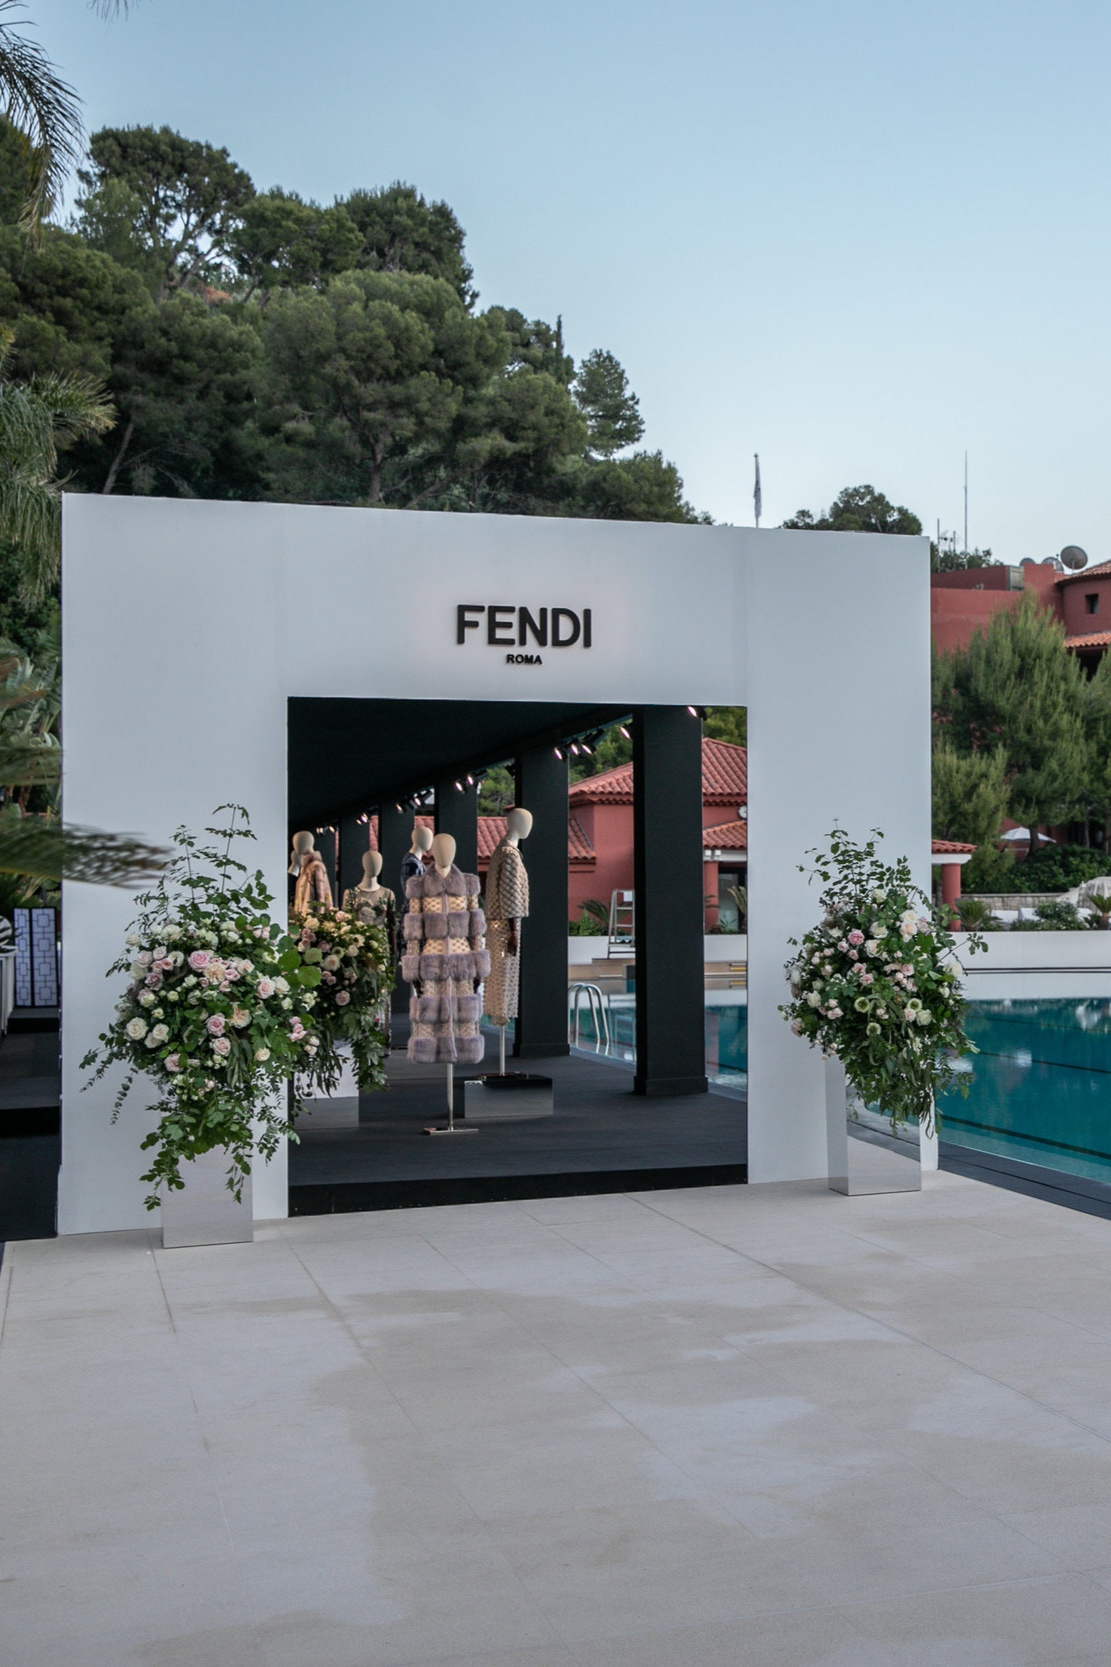 SET UP ONLY - FENDI MONTE-CARLO BEACH 6.6.19